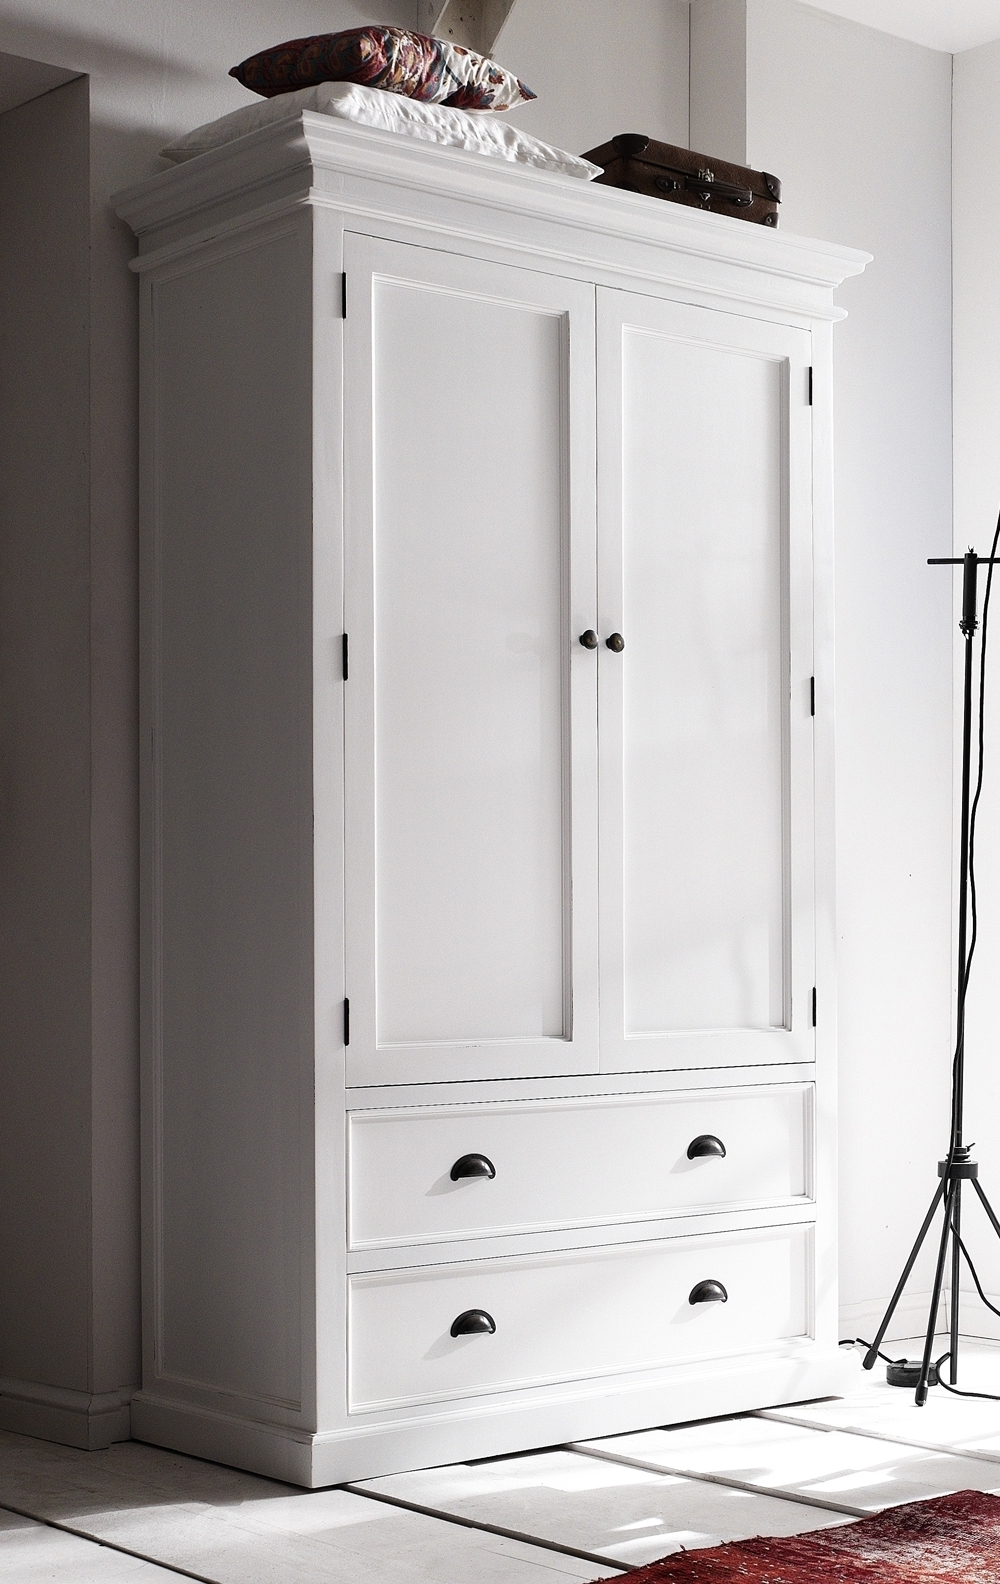 Tall White Wardrobes Throughout Trendy With The Best Solution To Practical But Elegant Design, The (View 12 of 15)